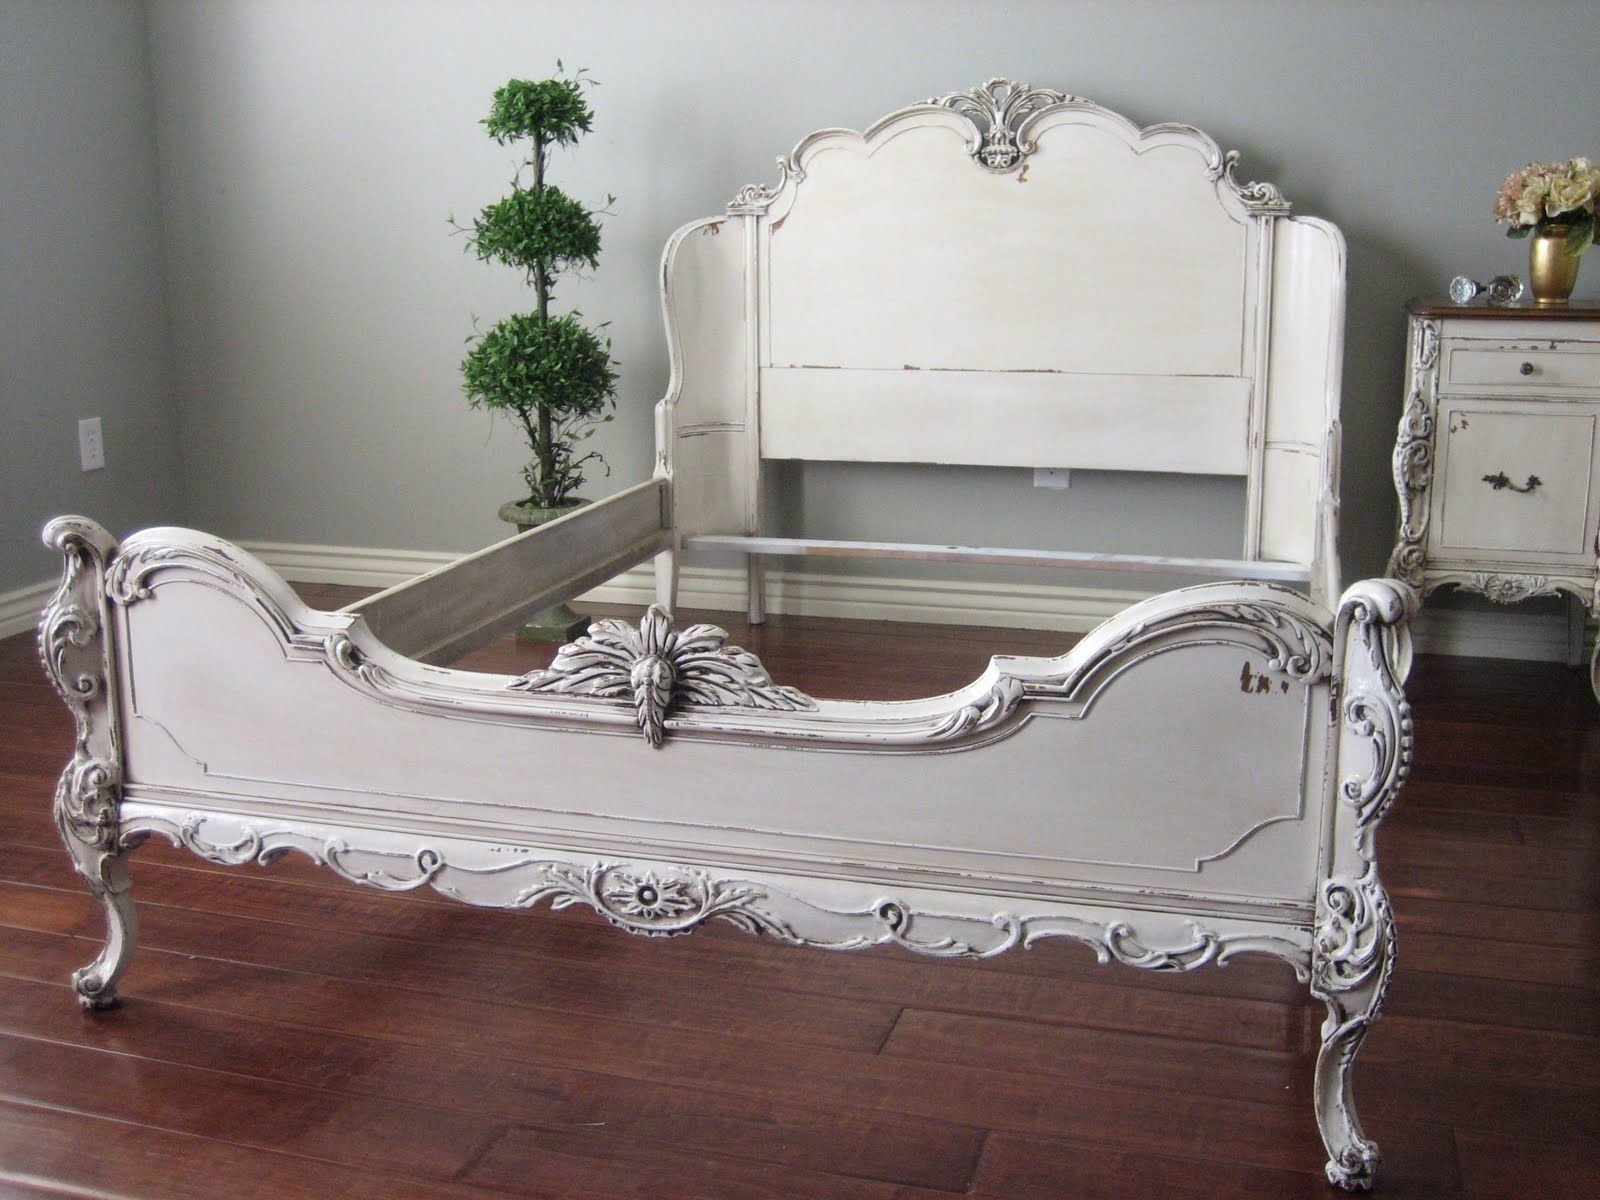 Ornate Bedroom Furniture Sets | Includes: Curved Headboard, Detailed Foot  Board, Wooden Side